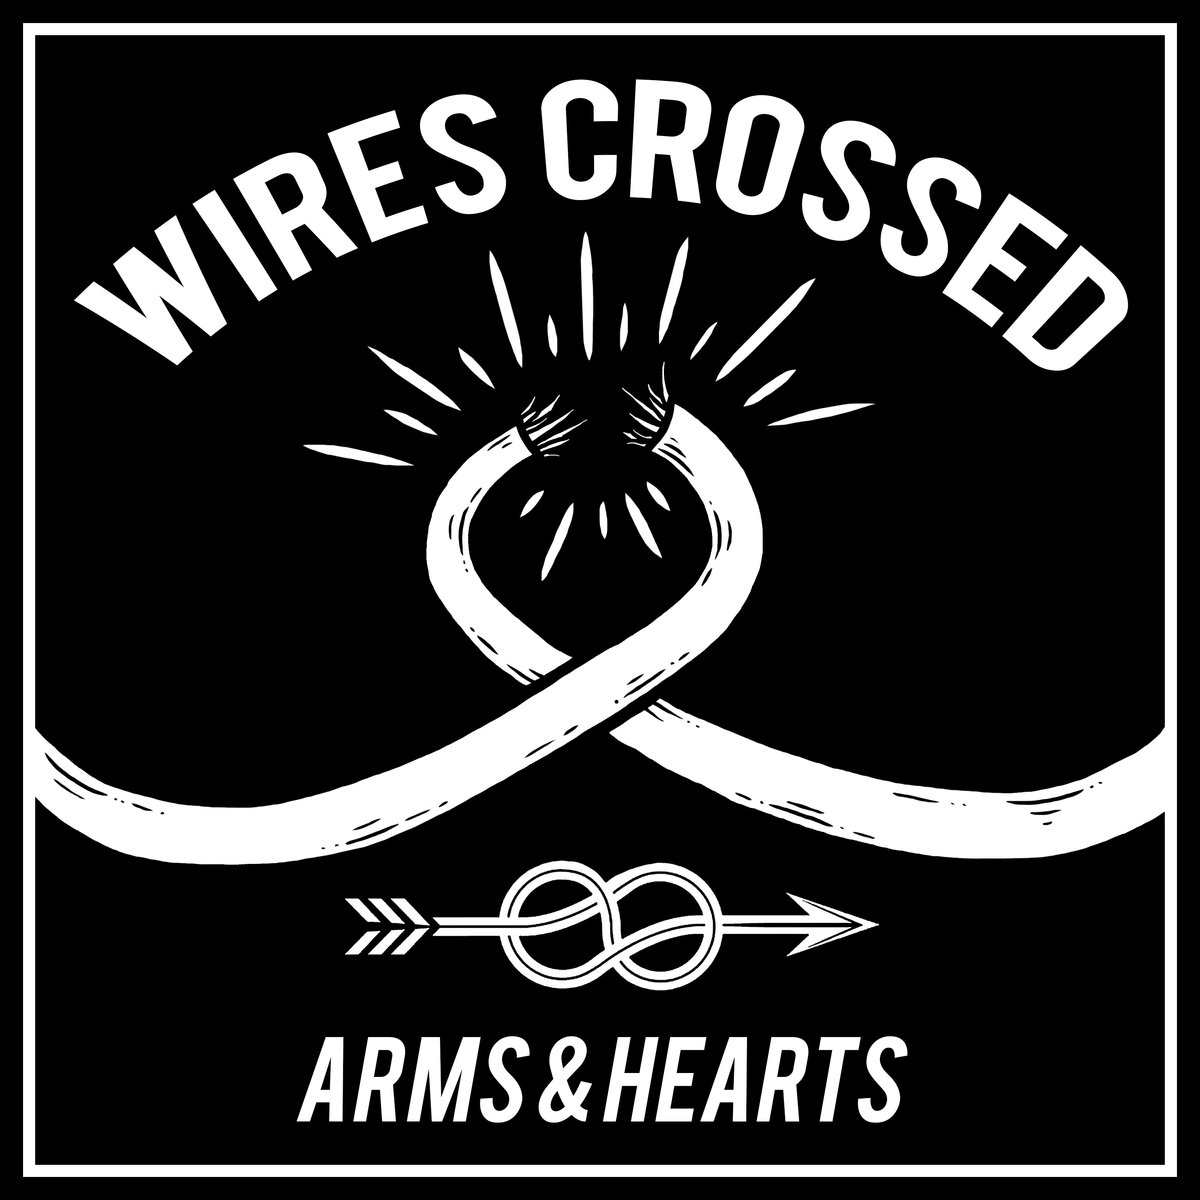 Colin\'s Punk Rock World: Album Review: Wires Crossed by Arms & Hearts